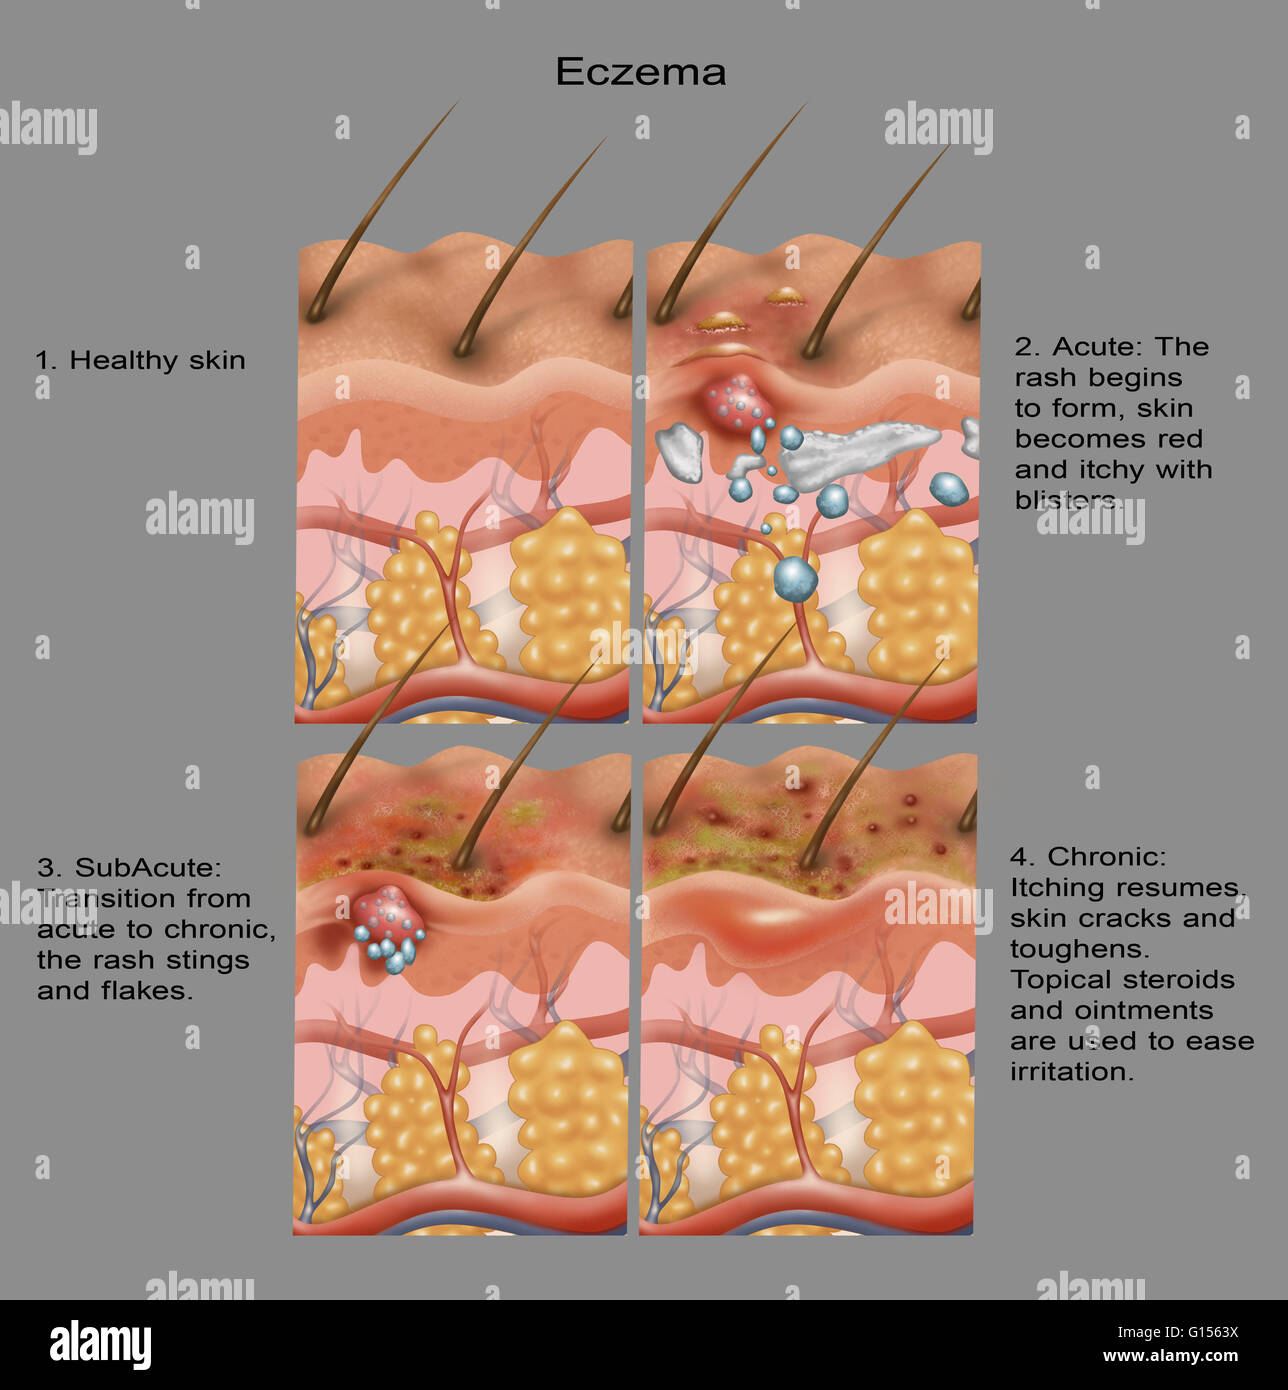 hight resolution of from top left to bottom right normal skin blisters and skin becomes itchy the rash transitions from acute to